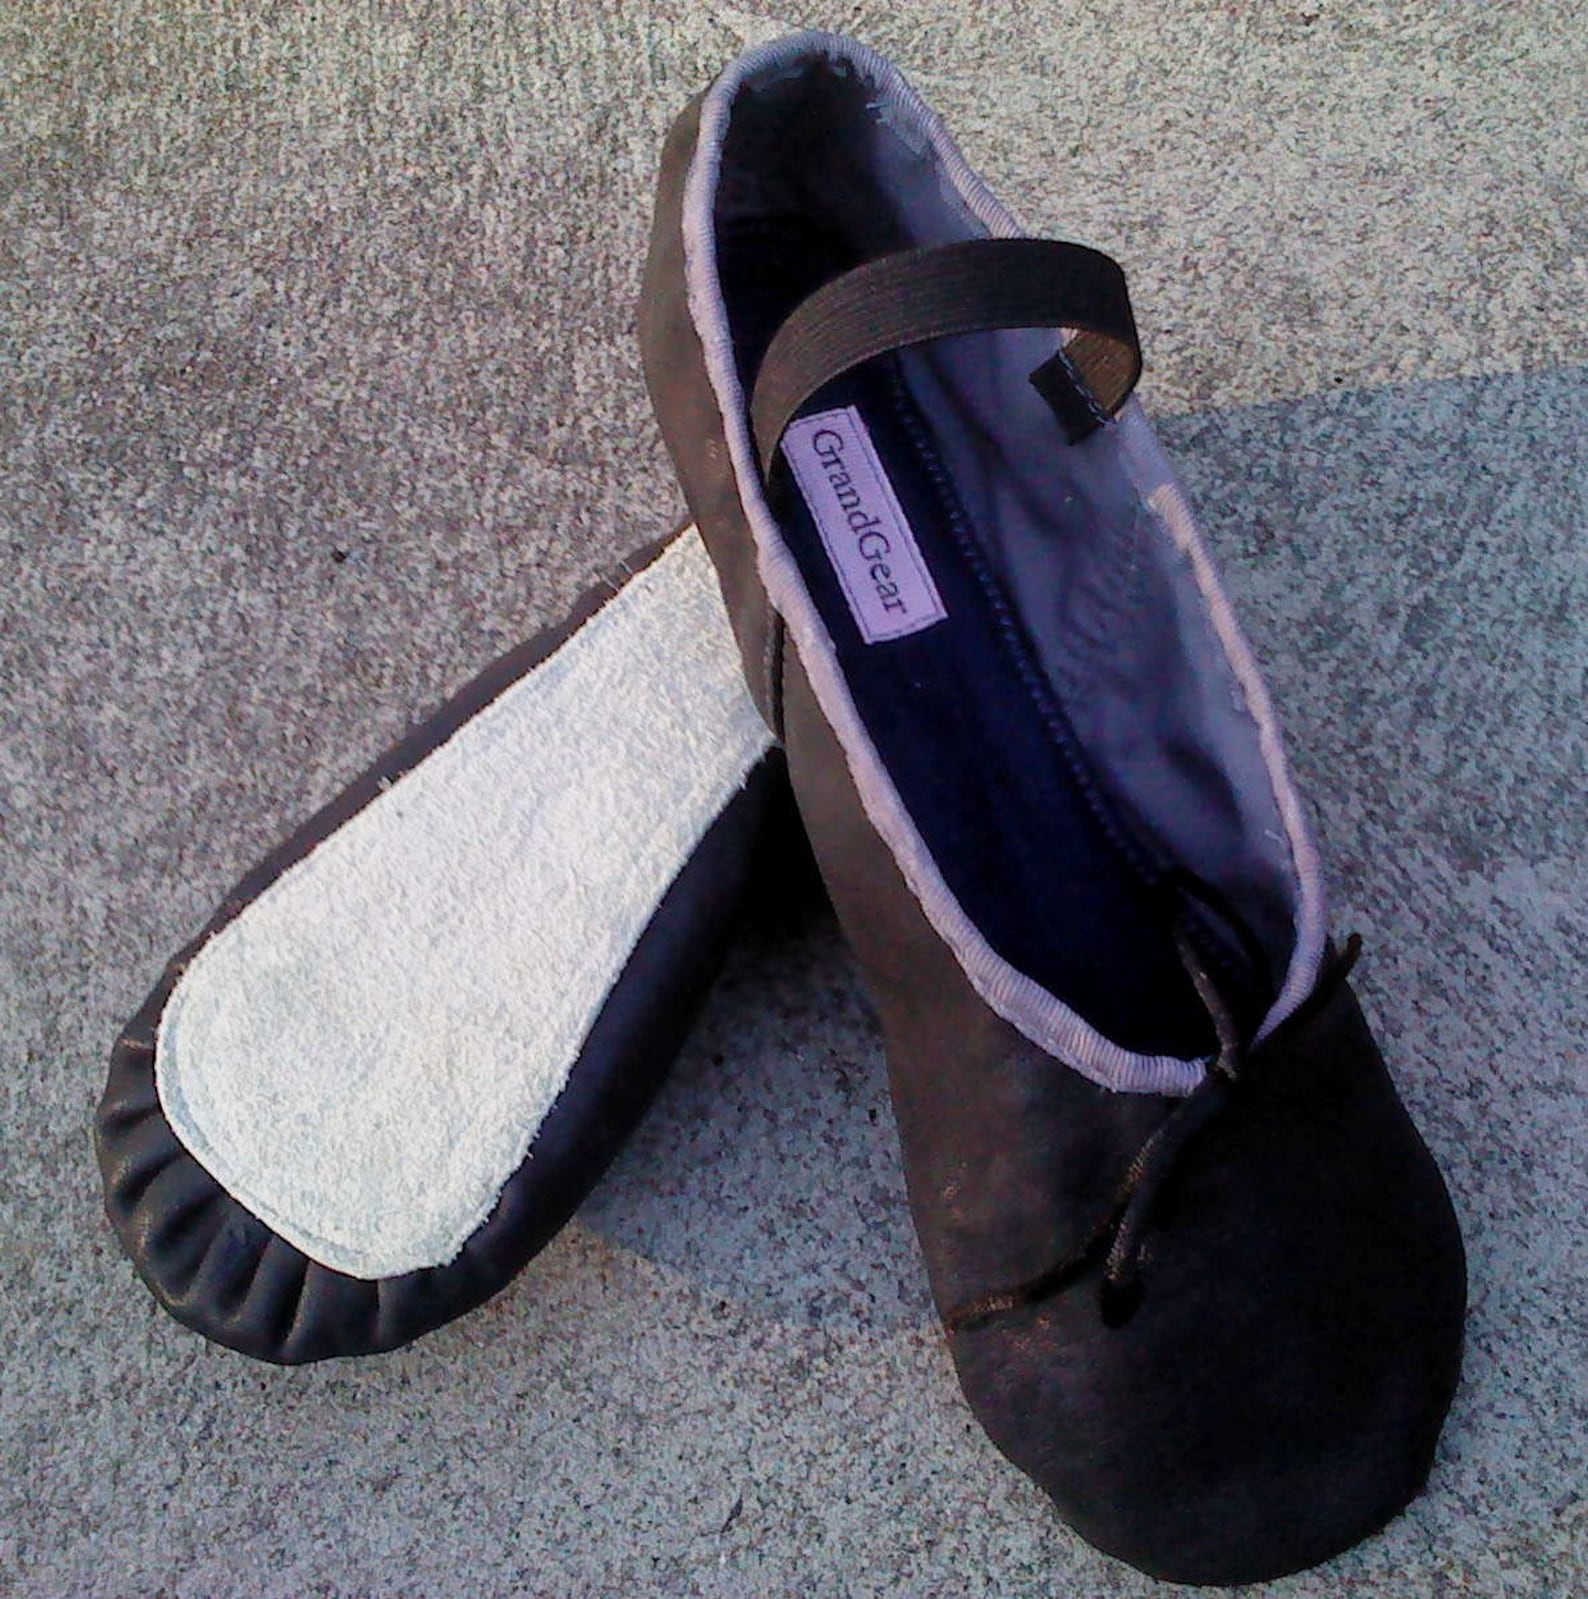 anthracite grey leather ballet shoes - full sole - adult sizes